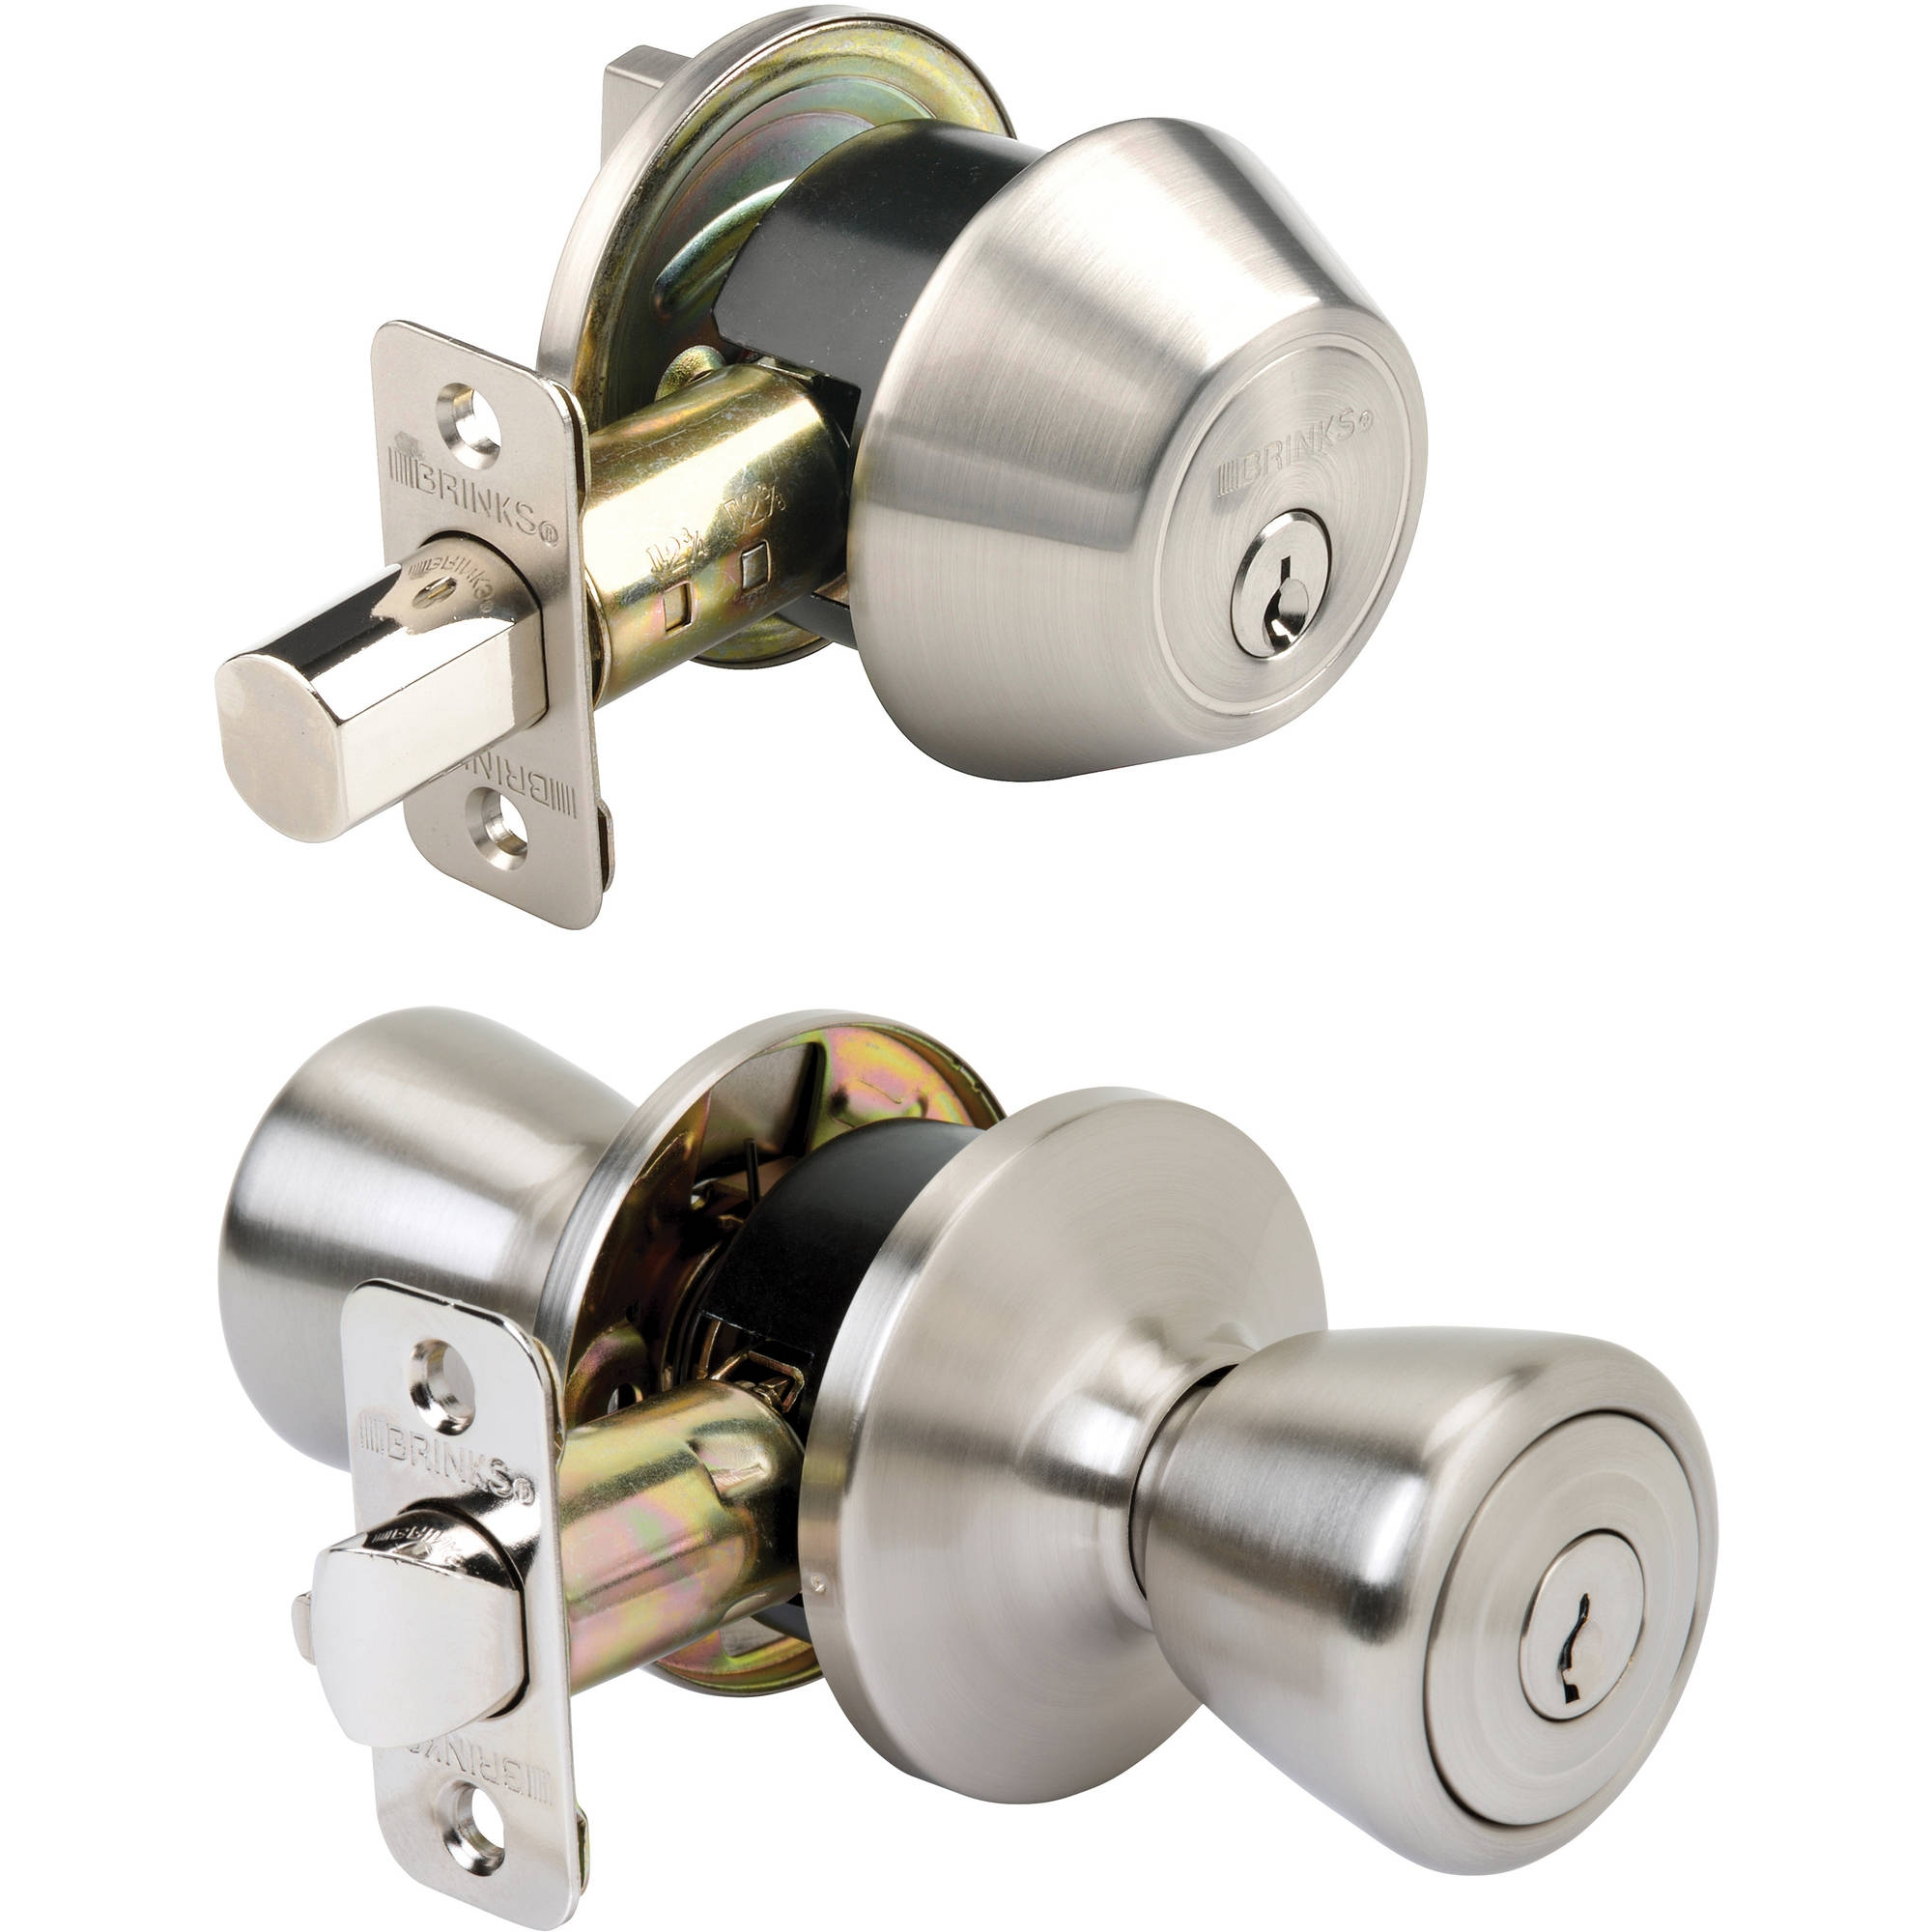 Door Knobs That Lock Automatically